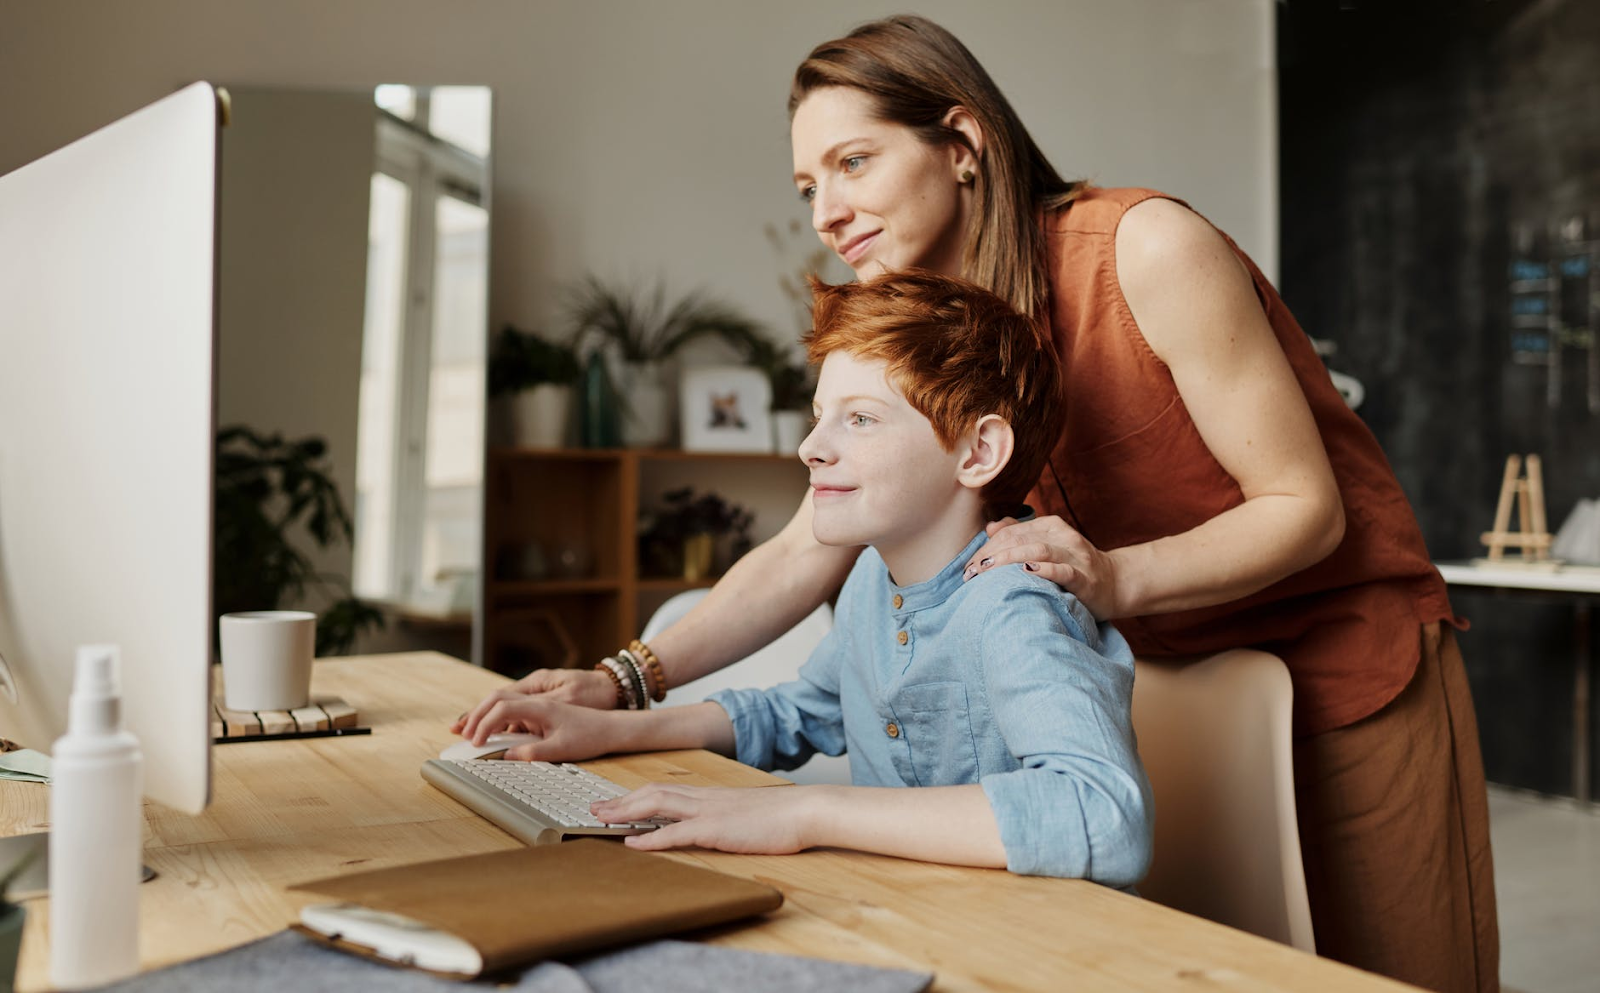 A mother finding an online tutor to schedule an online class for her child at home.